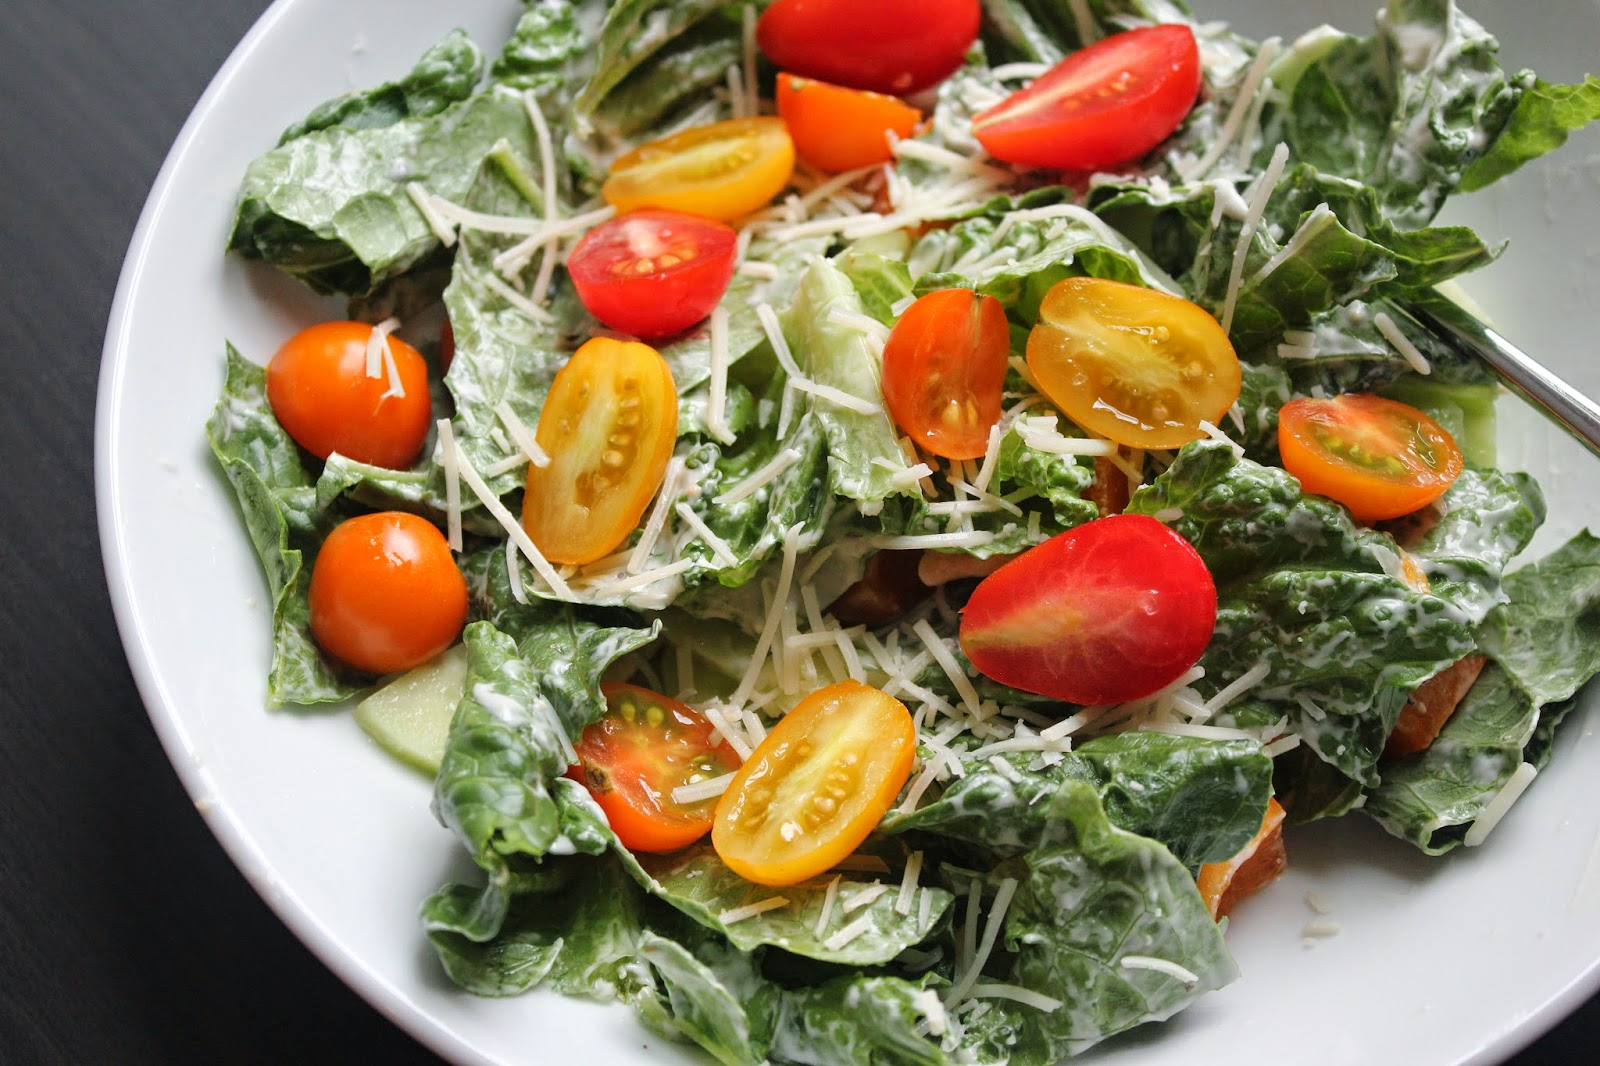 Caesar salad with tomatoes from the garden